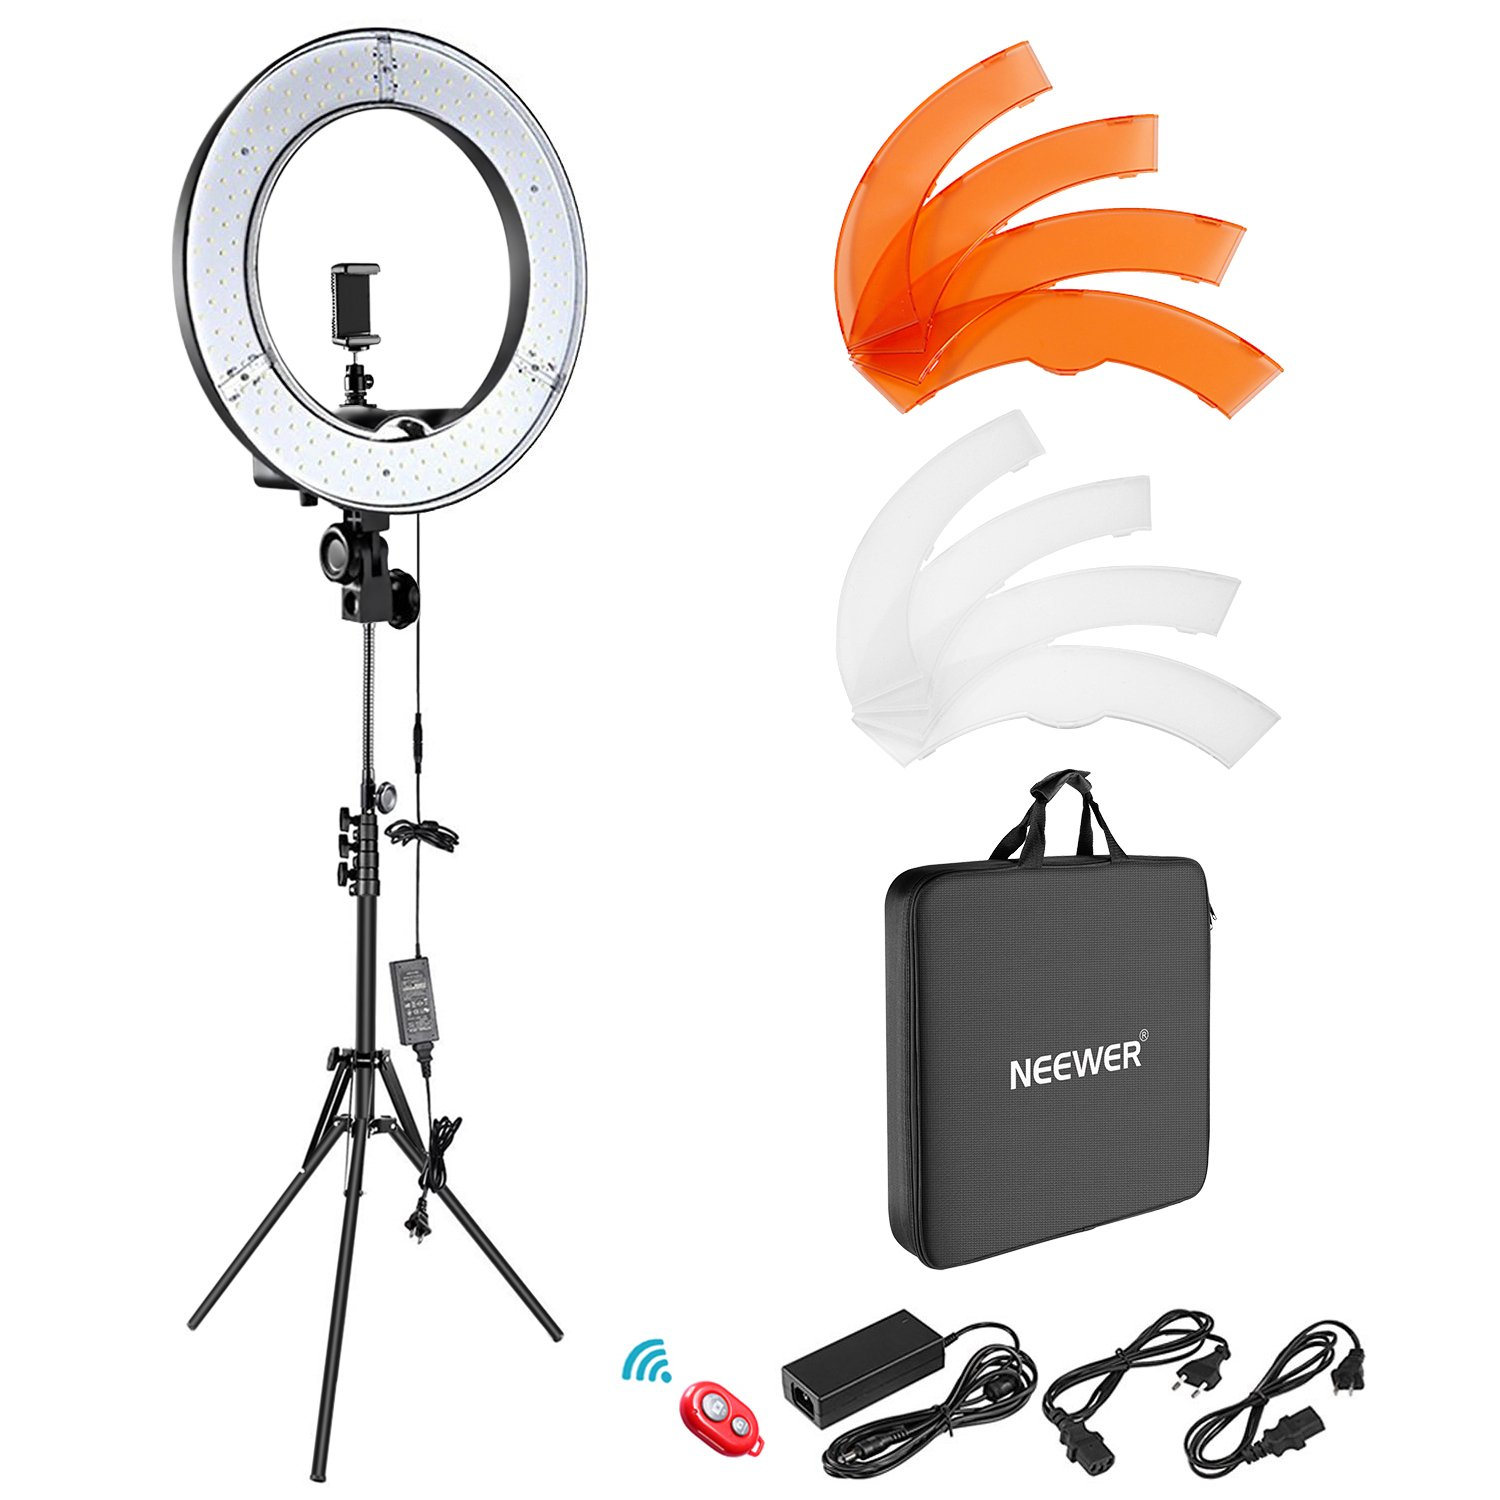 Neewer Camera Photo Video Lighting Kit: 18 inches/48 Centimeters Outer 55W 5500K Dimmable LED Ring Light, Light Stand, Bluetooth Receiver for Smartphone, YouTube, Vine Self-Portrait Video Shooting